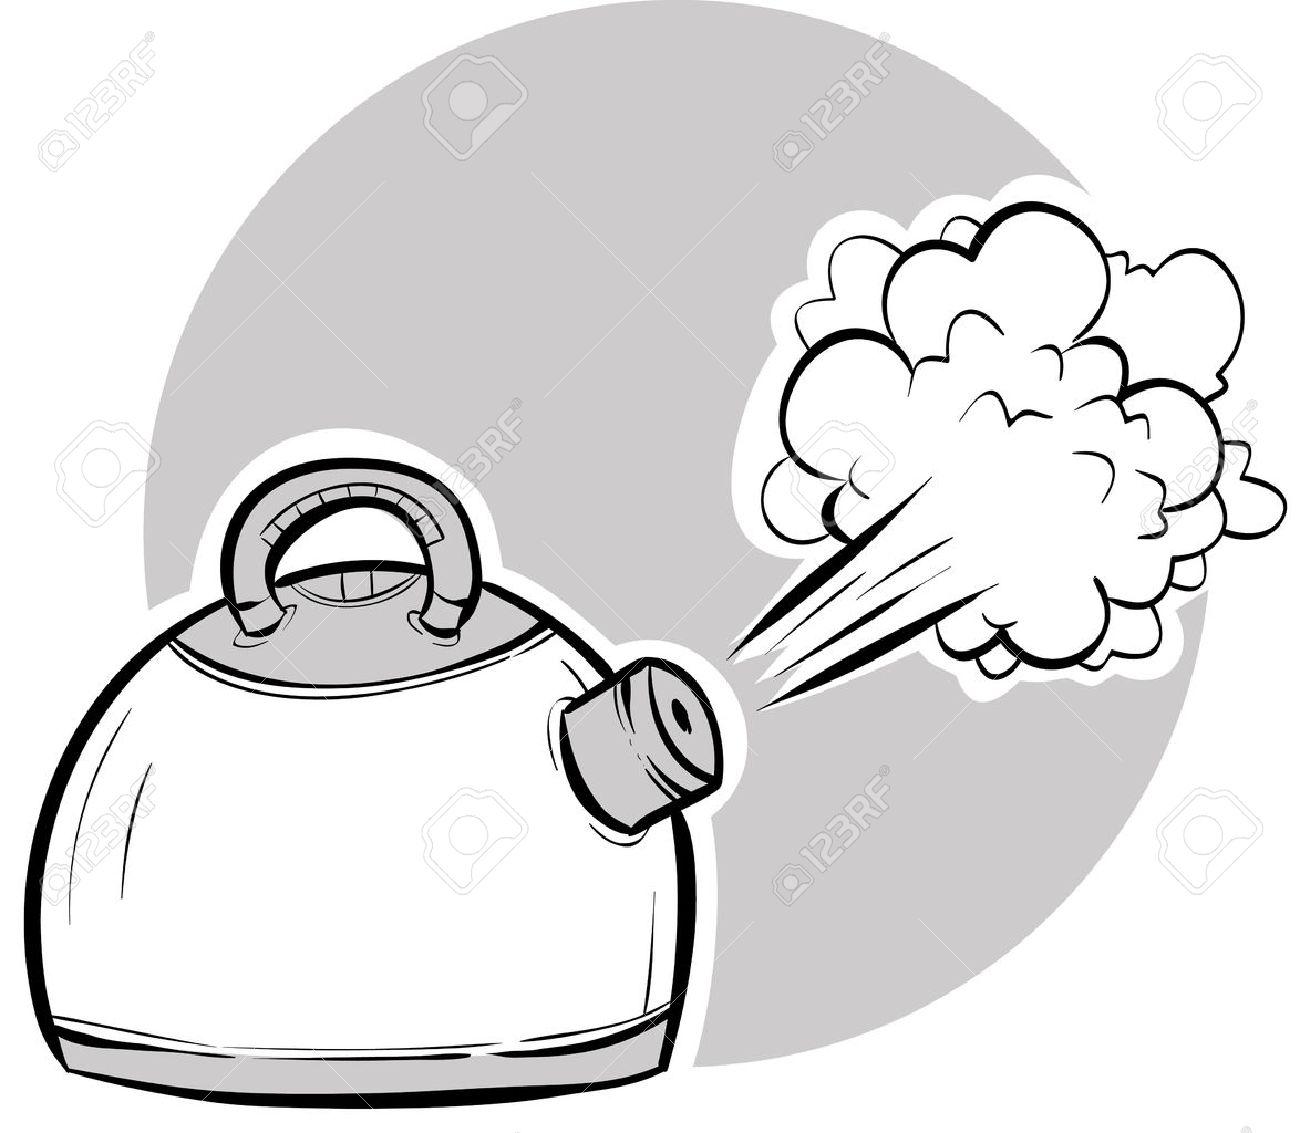 Steam blasting from a boiling, cartoon kettle..